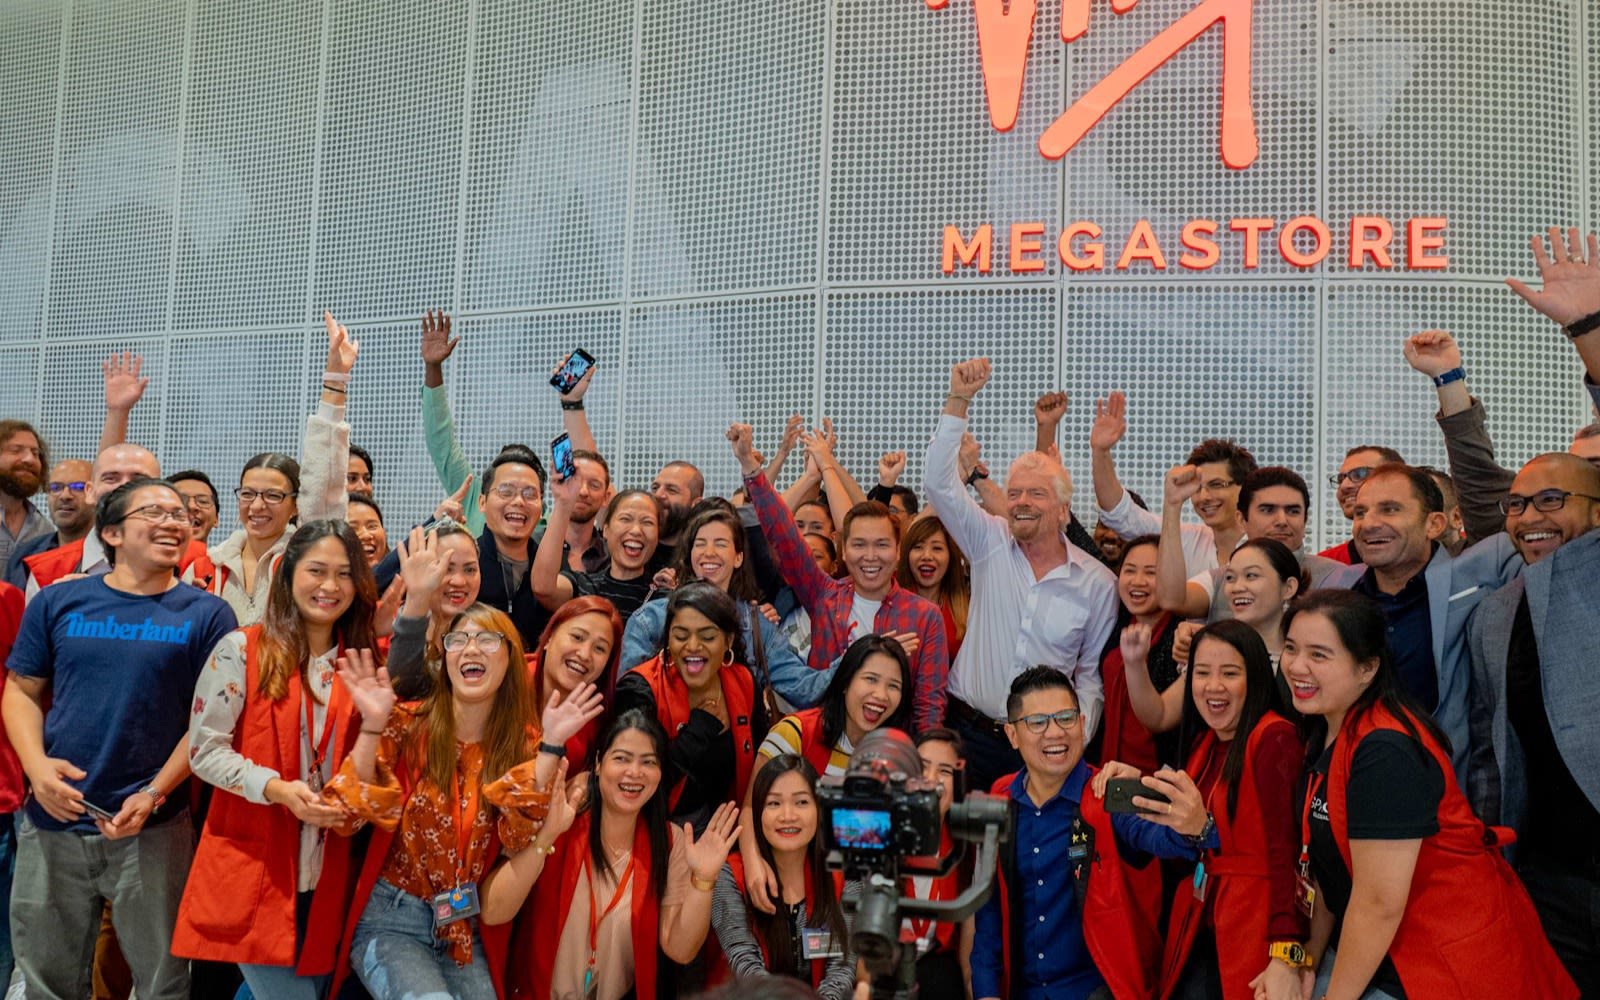 Richard Branson with the Virgin Megastore team in Dubai